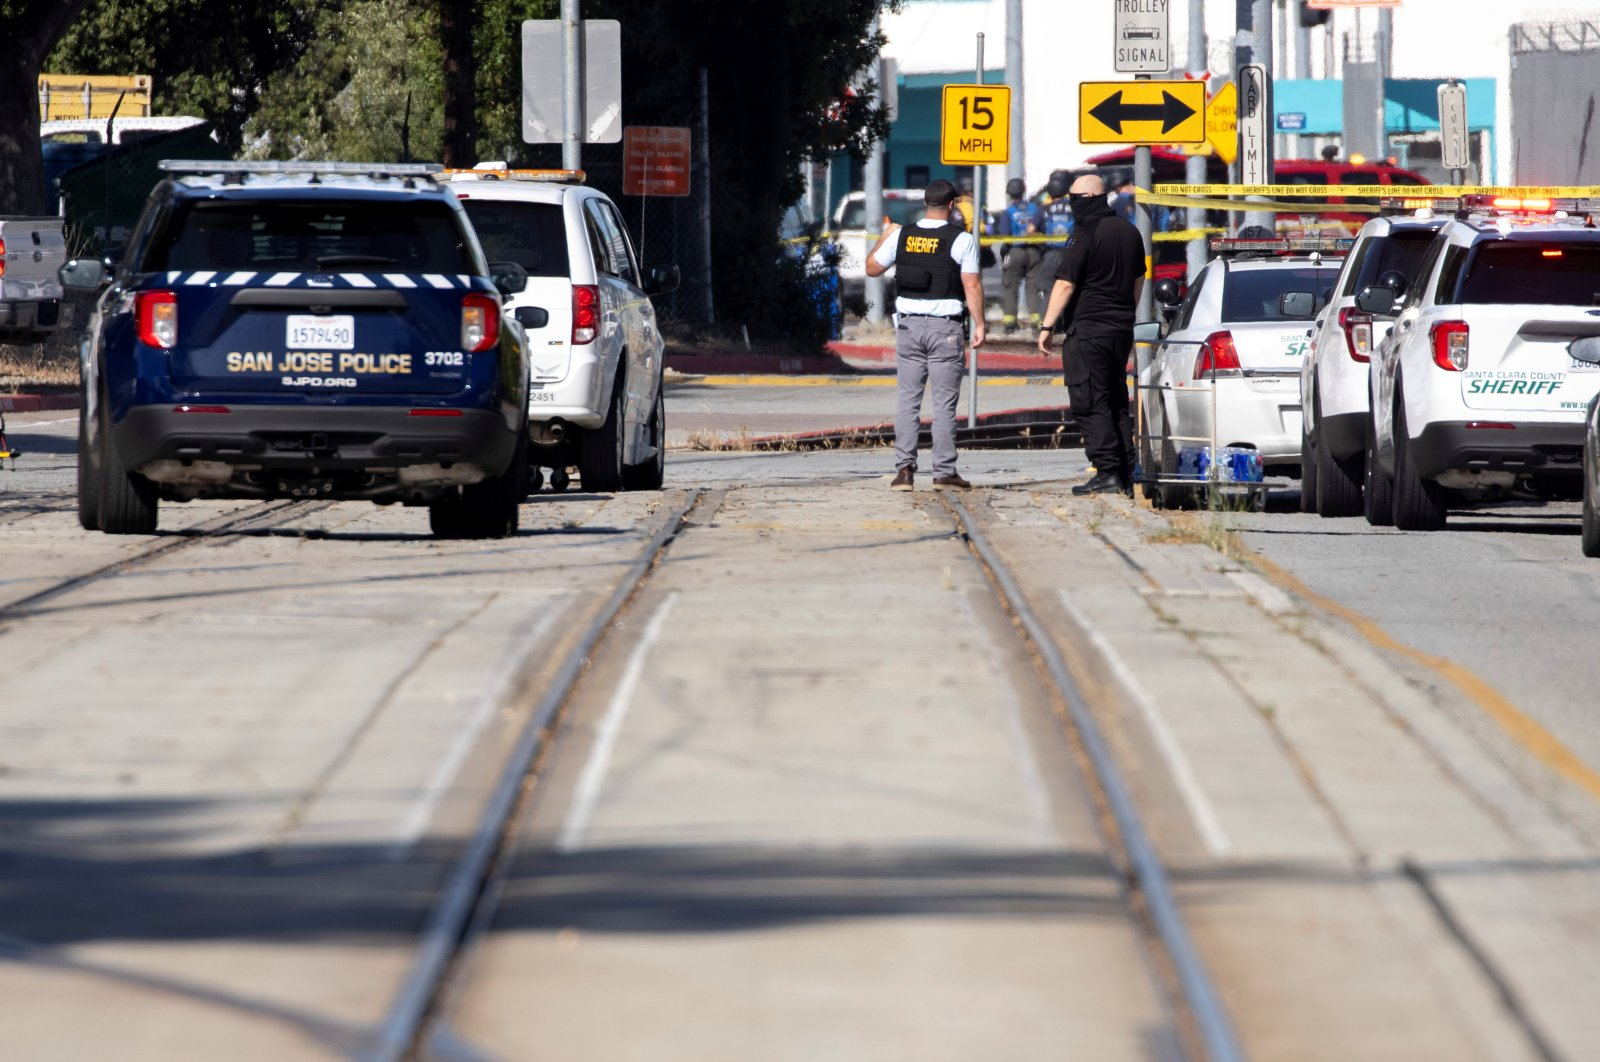 Police secure the scene of a mass shooting at a railyard run by the Santa Clara Valley Transportation Authority in San Jose, California, U.S., May 26, 2021. (Reuters Photo)